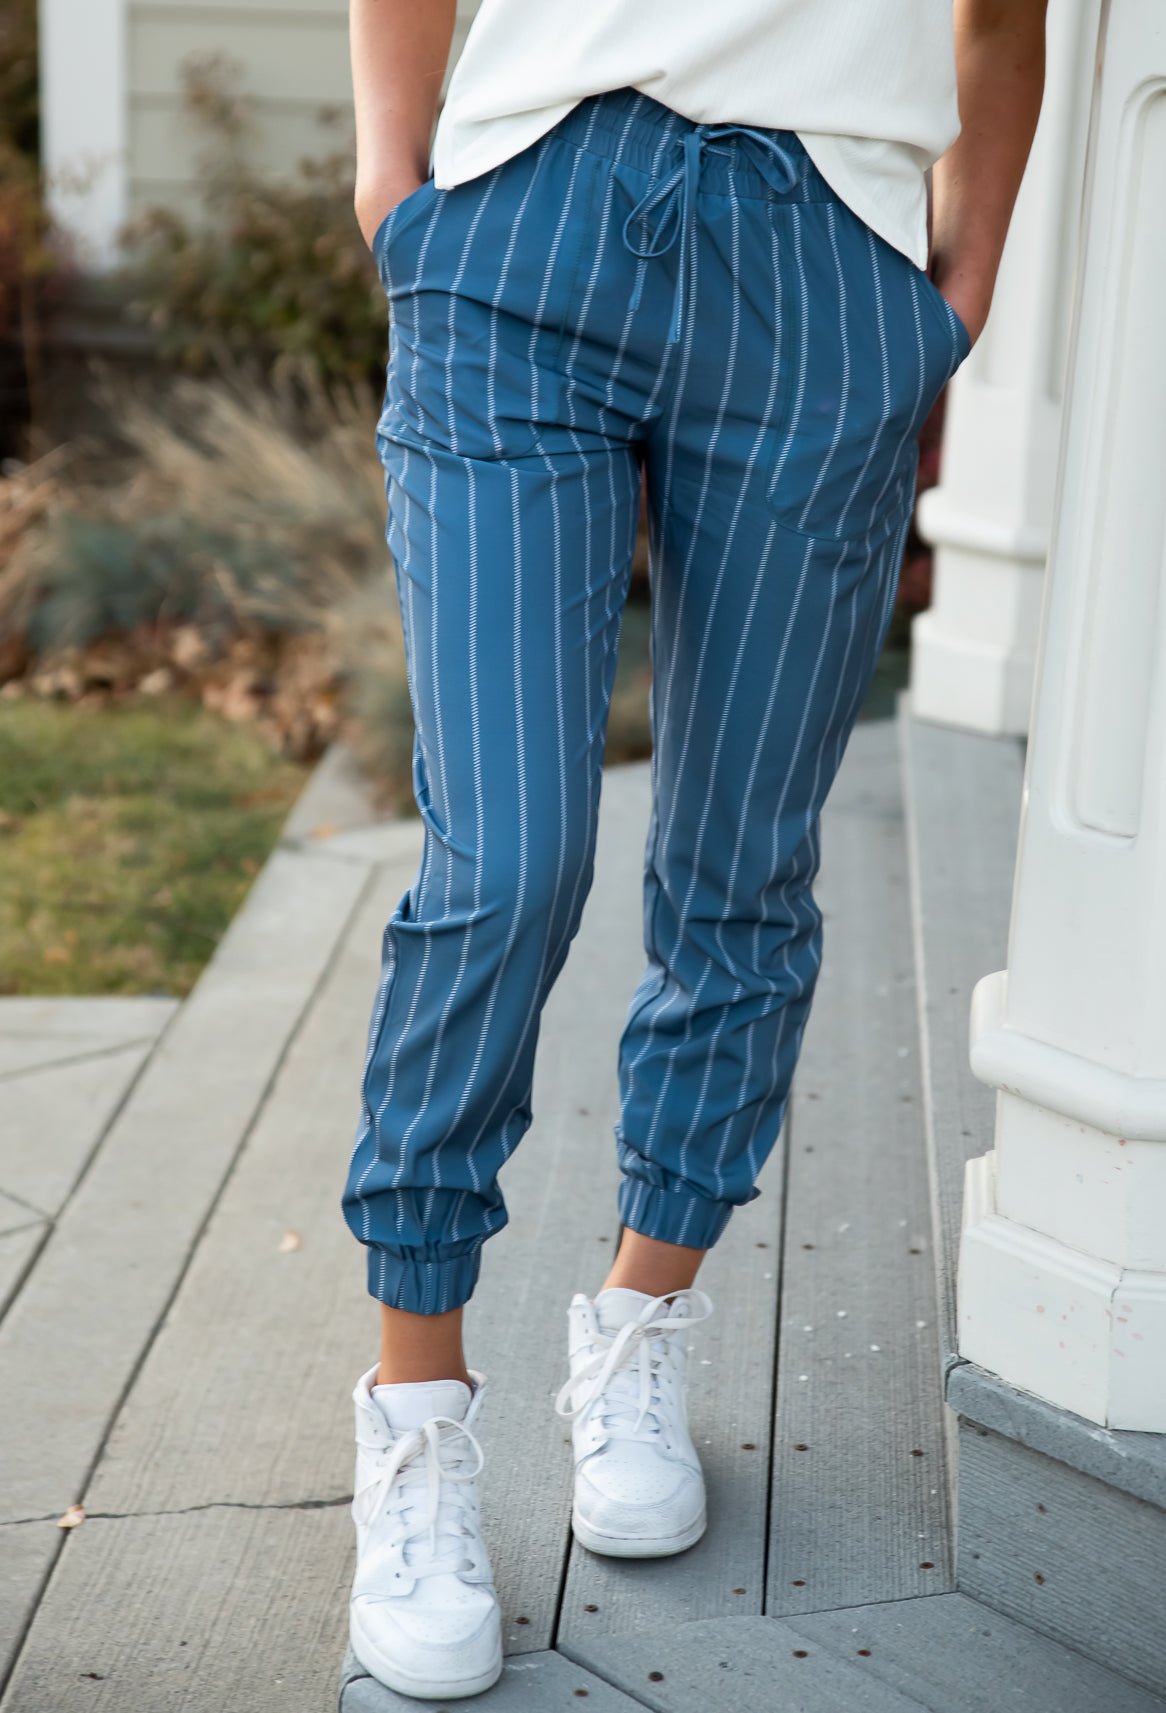 DT UPTOWN Lightweight Joggers in Steel Blue Stripe  *Limited Edition*